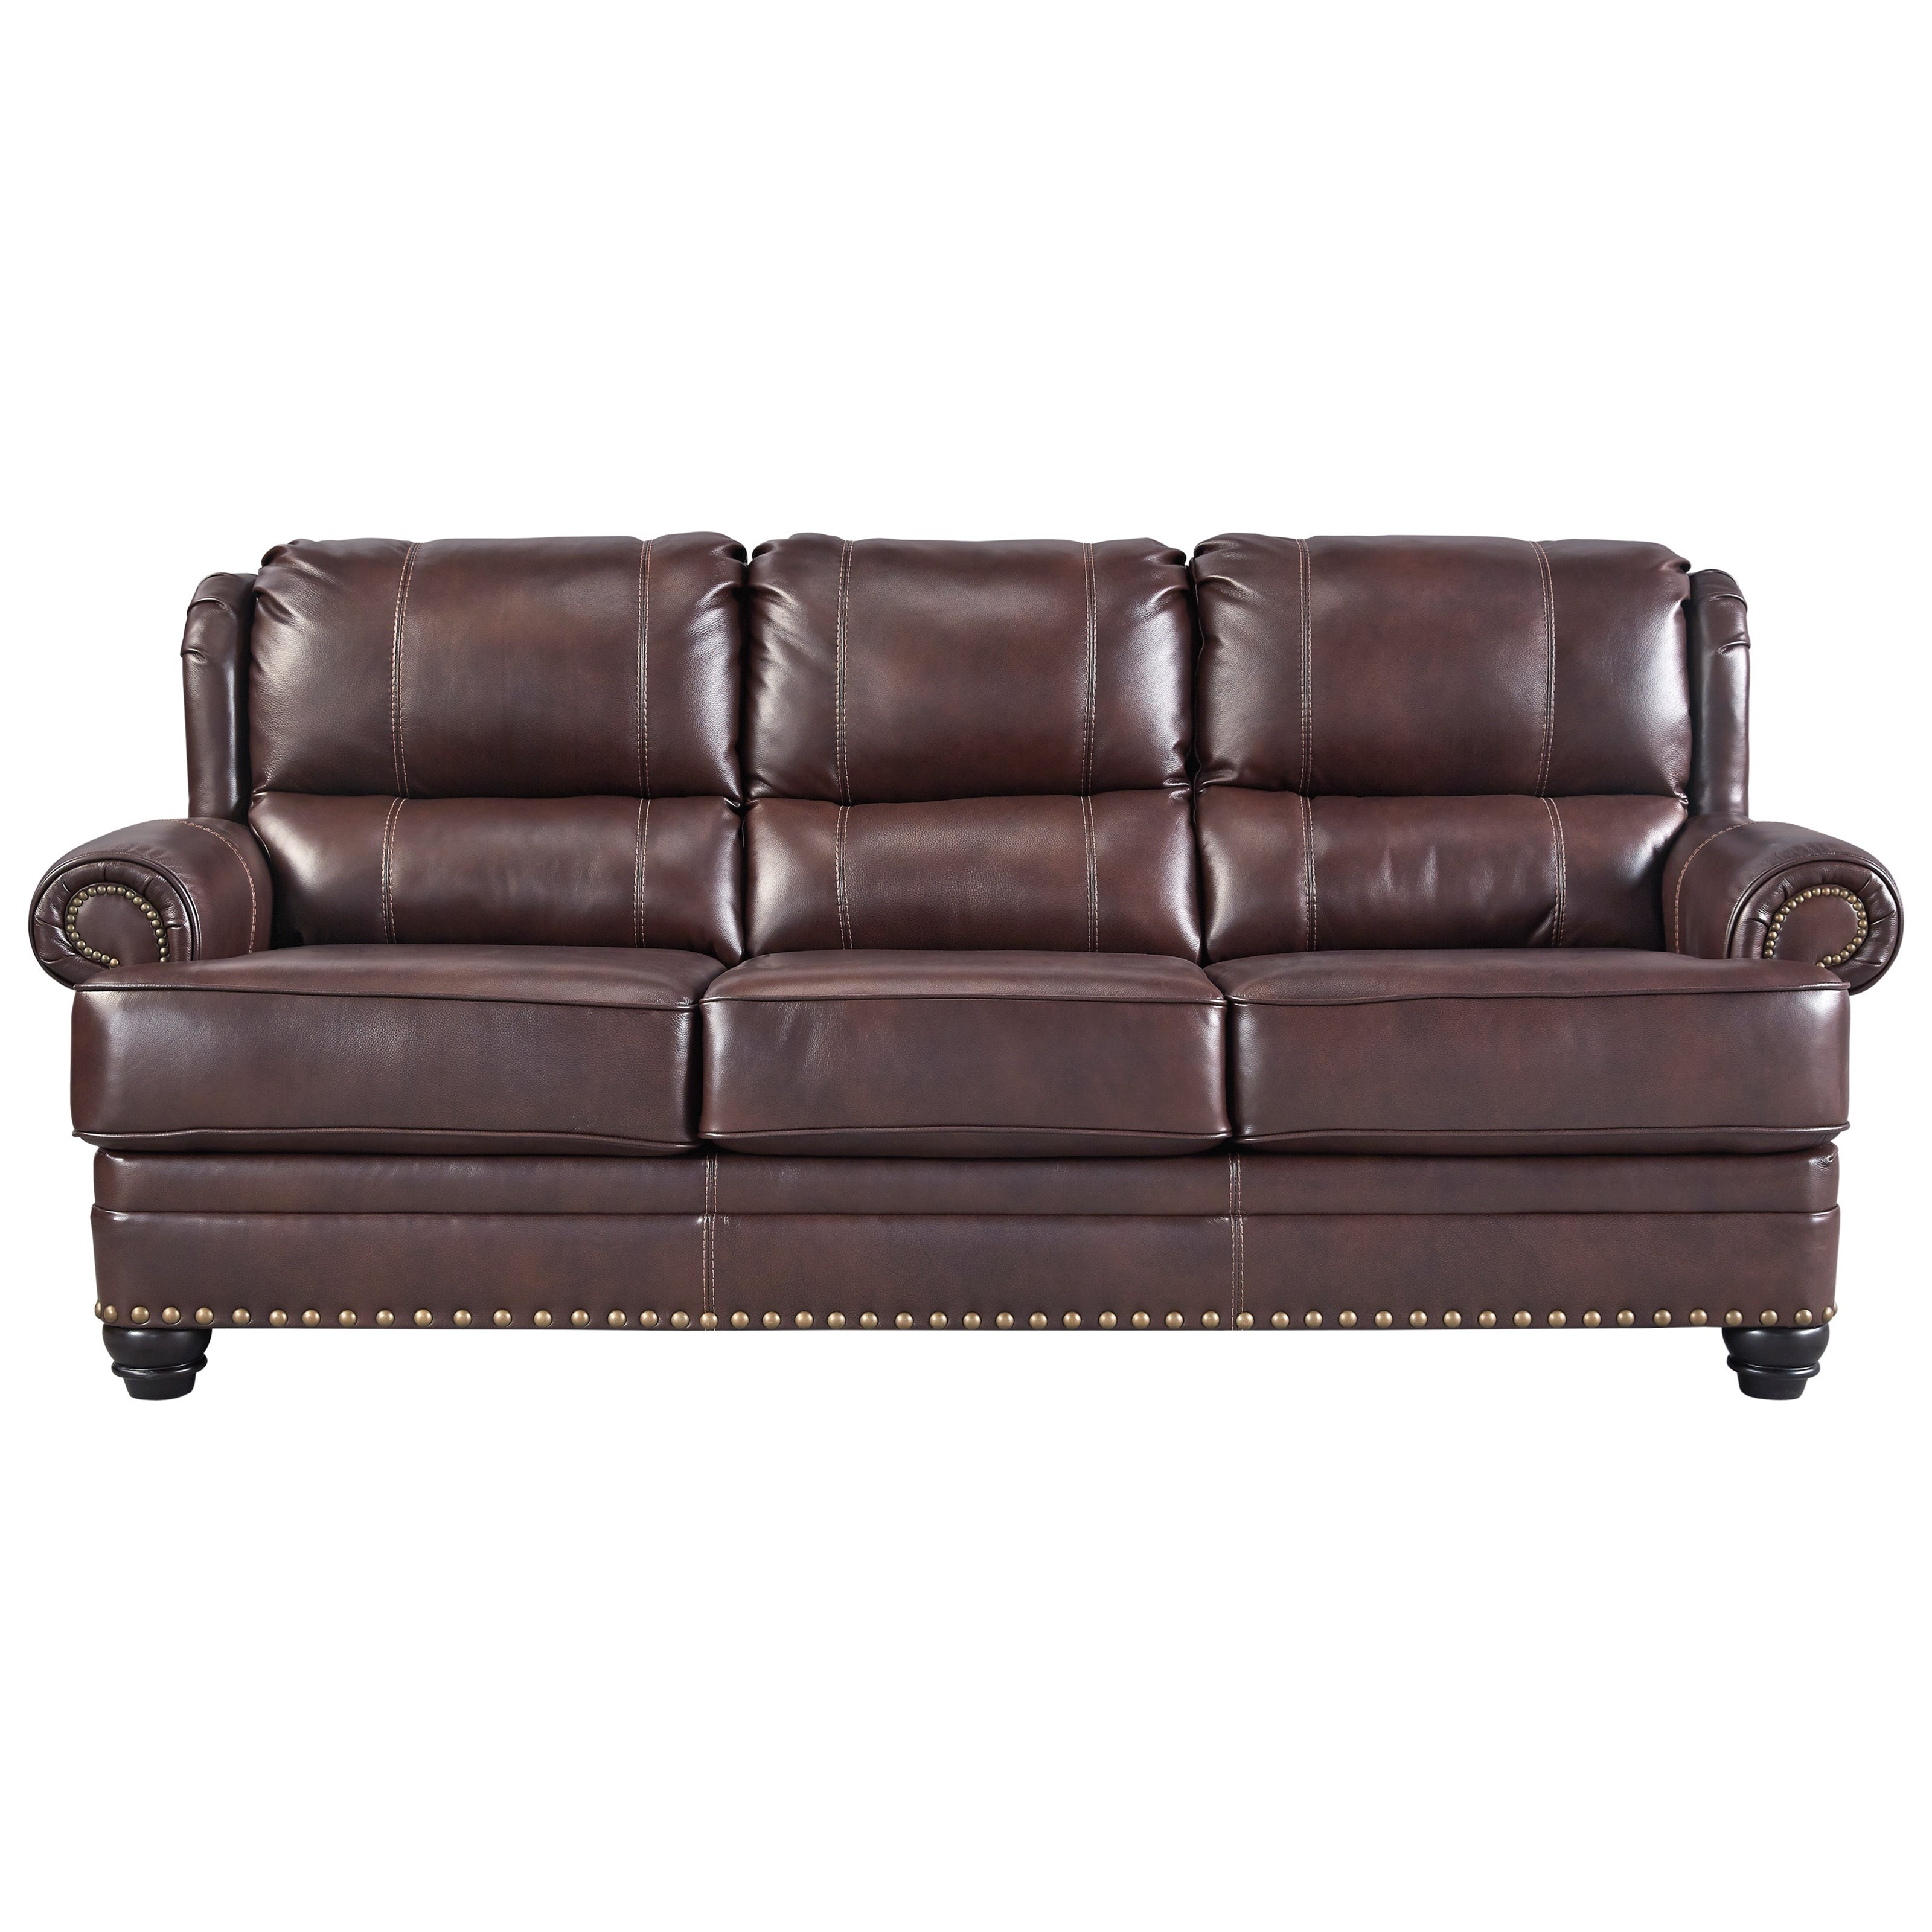 Signature Design by Ashley Glengary Sofa - Item Number: 3170038